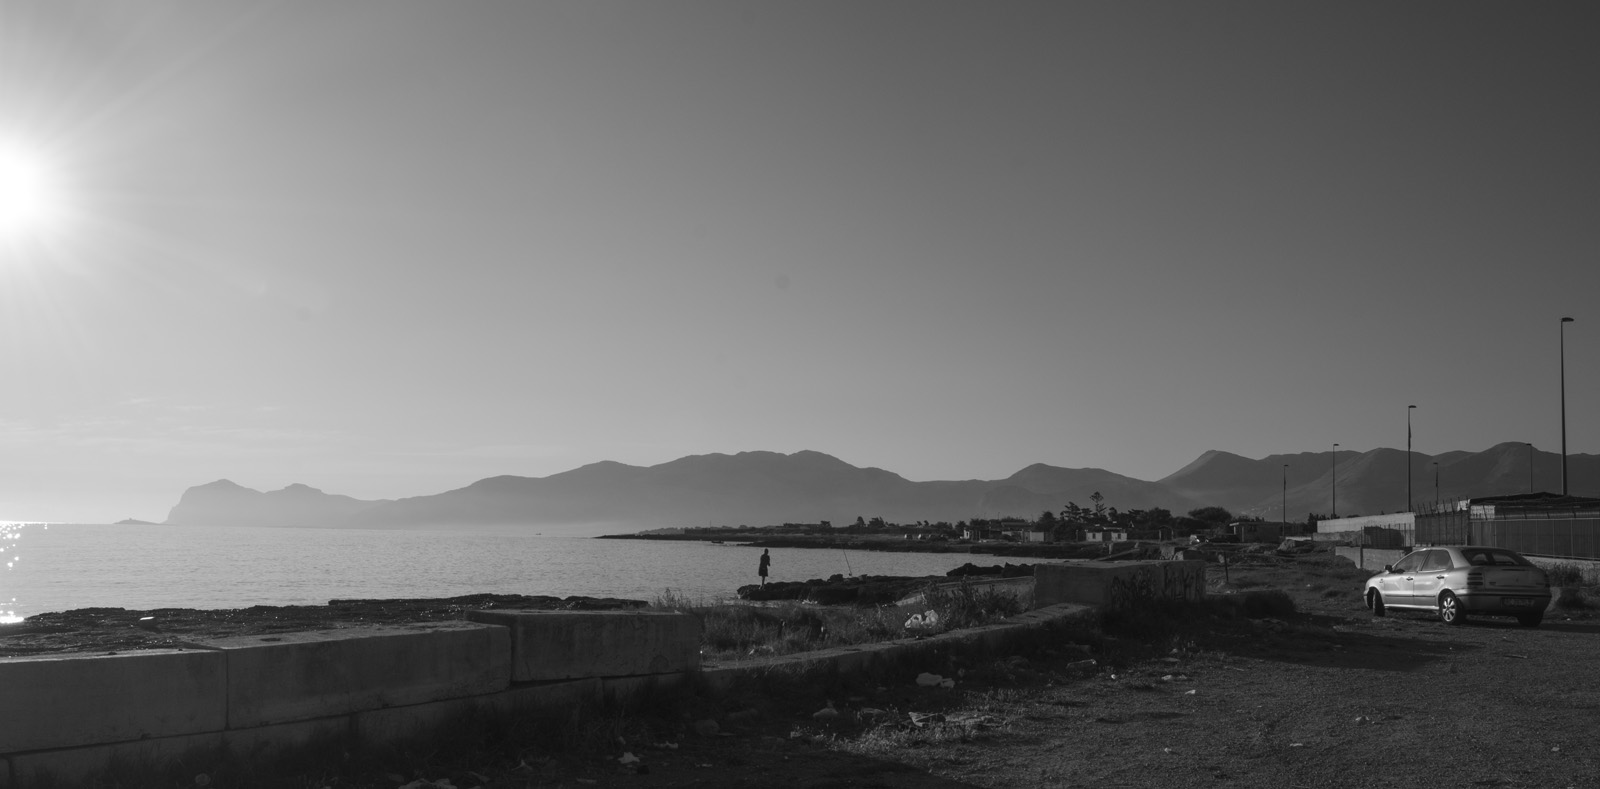 During a frustrating dawn walk down a long road from the Palermo airport after a missed flight, I was given this incredible view of the city's outskirts. In the morning surf, fishermen stood patiently on the rocks to catch the day's meal.